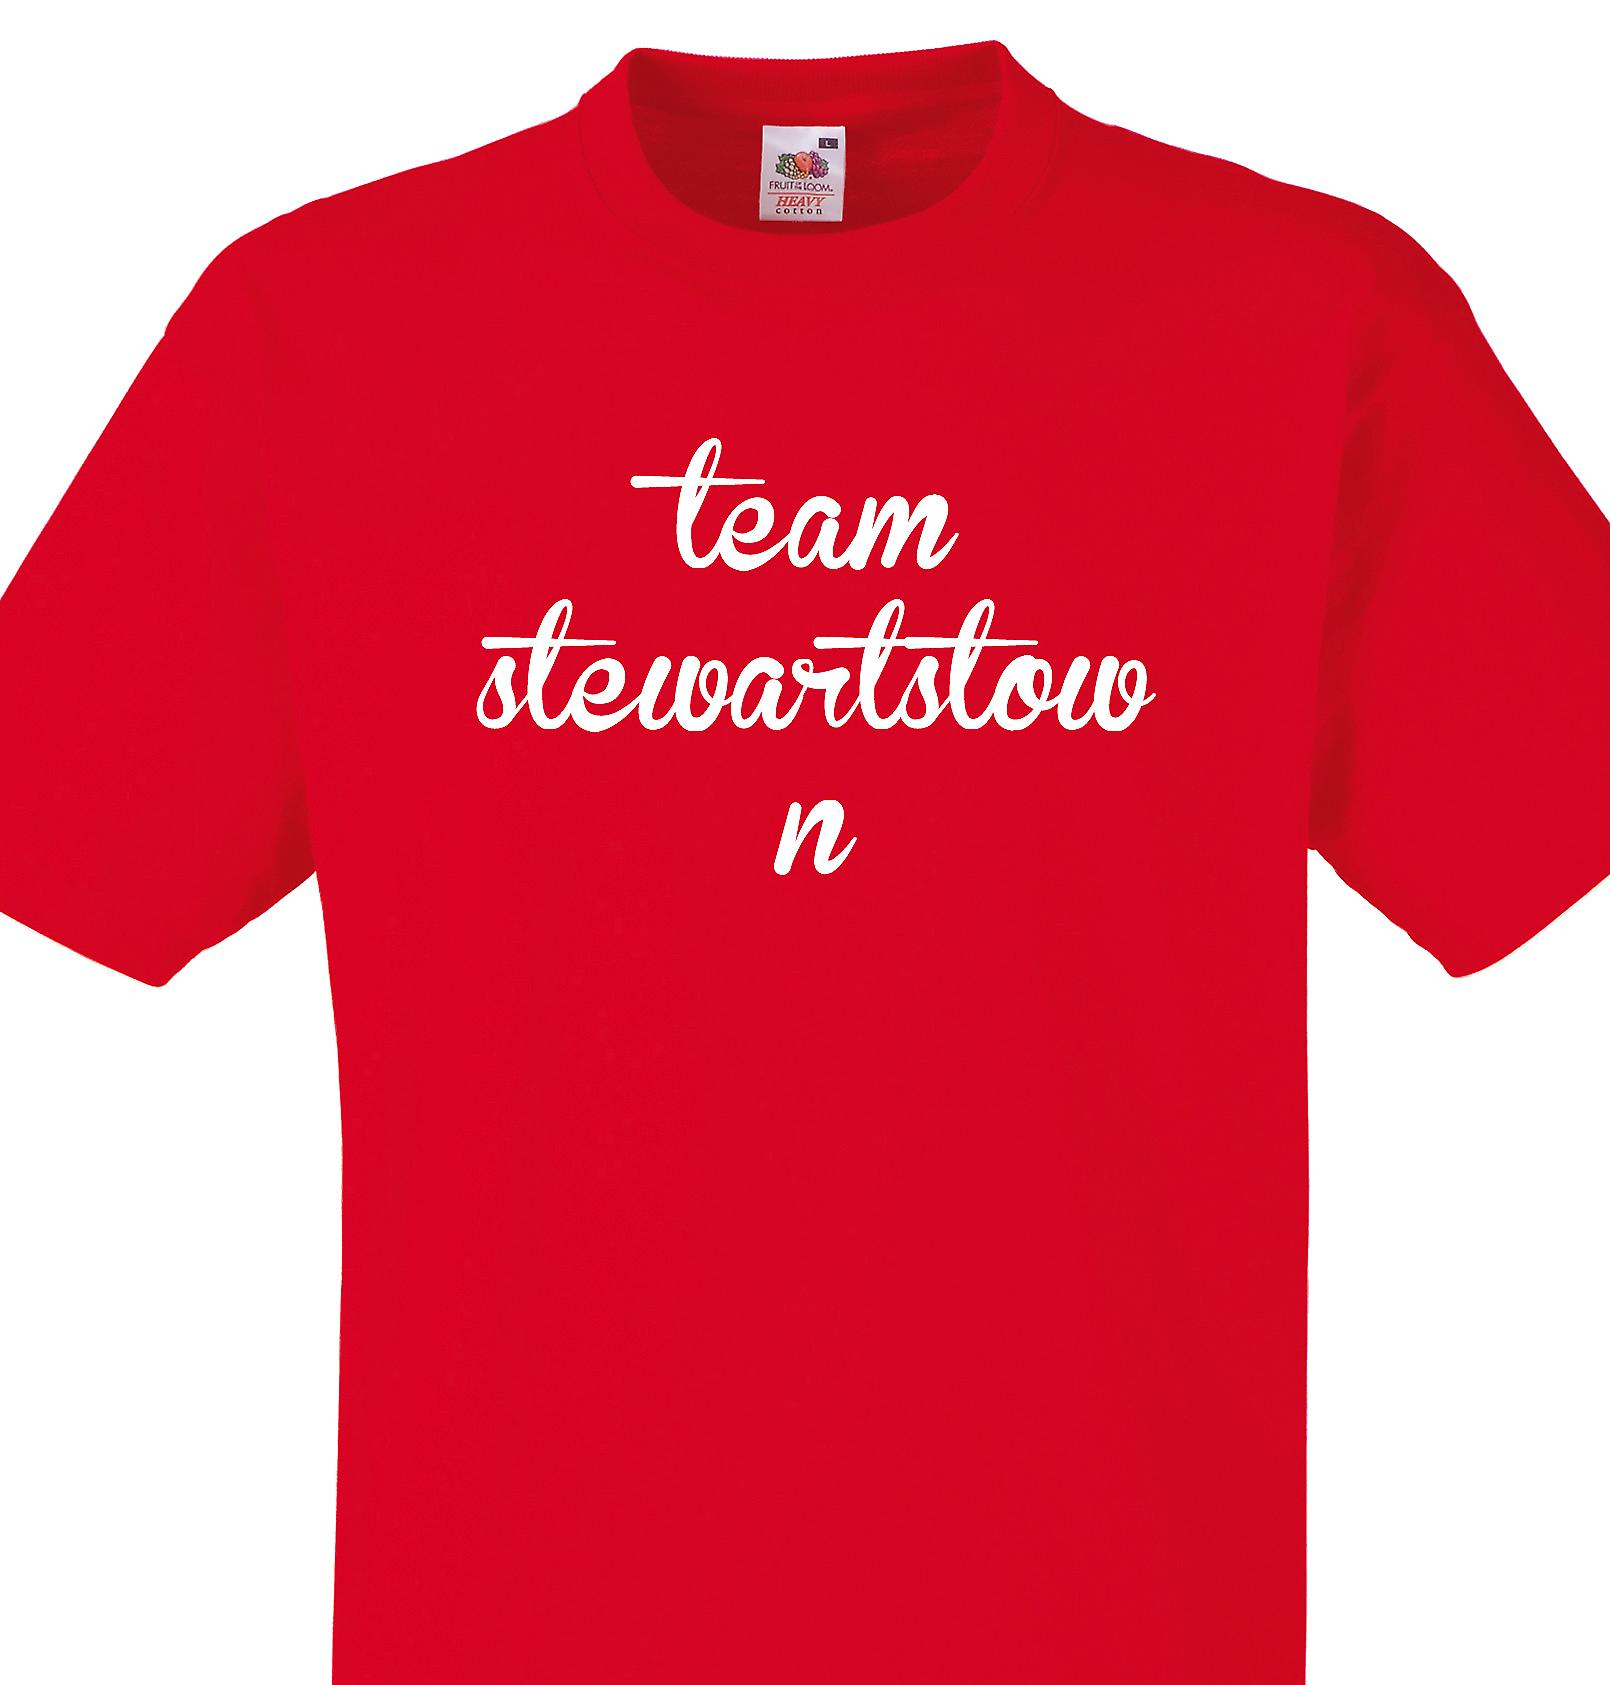 Team Stewartstown Red T shirt